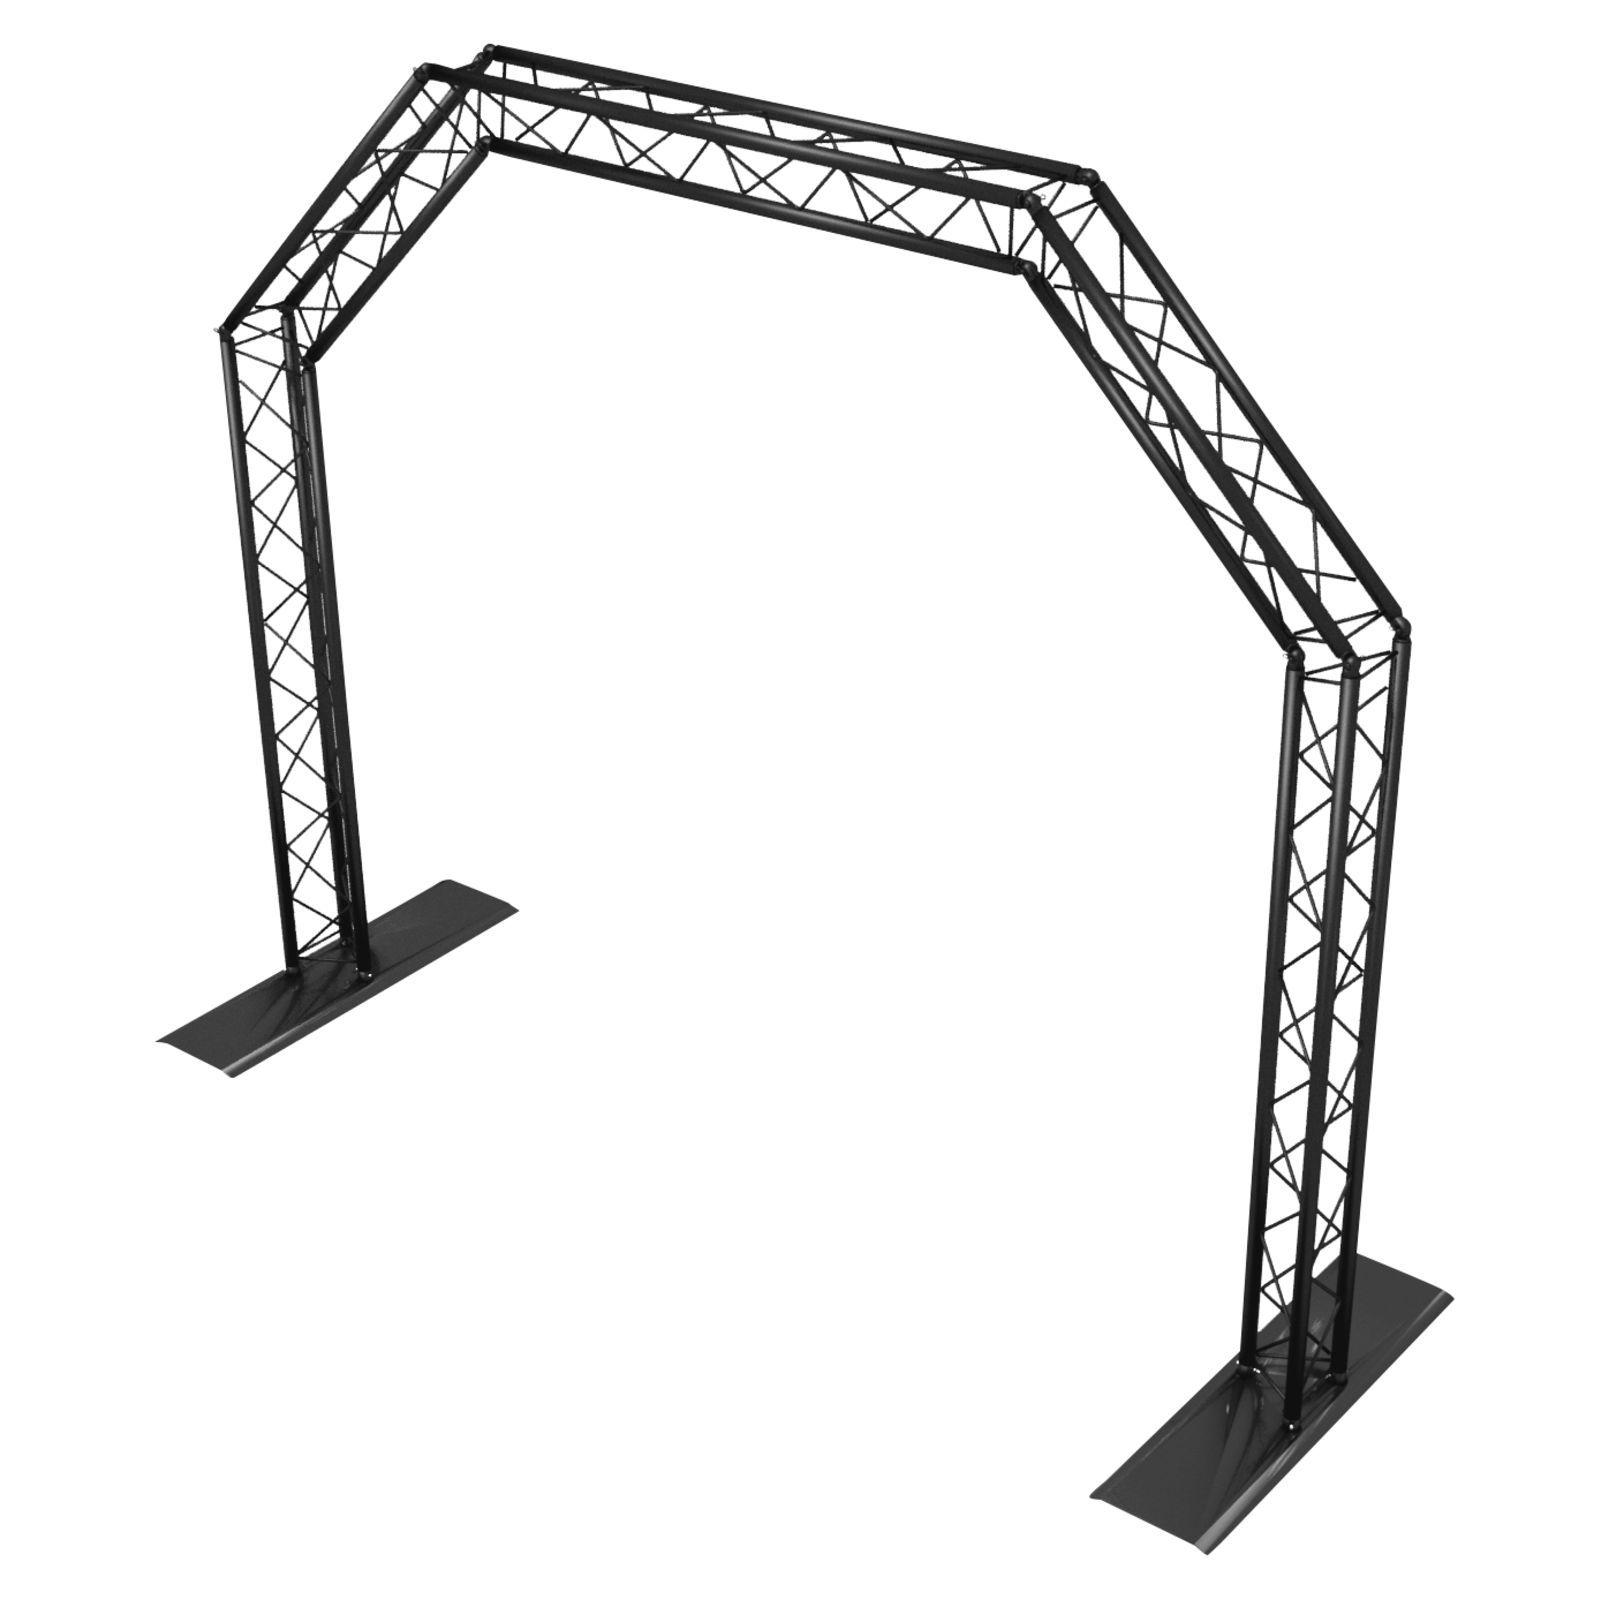 lightmaXX ALU-STAGE MOBILE TRUSS GATE Black, 2,4mx2,9m, Ø35mm, TÜV Produktbillede